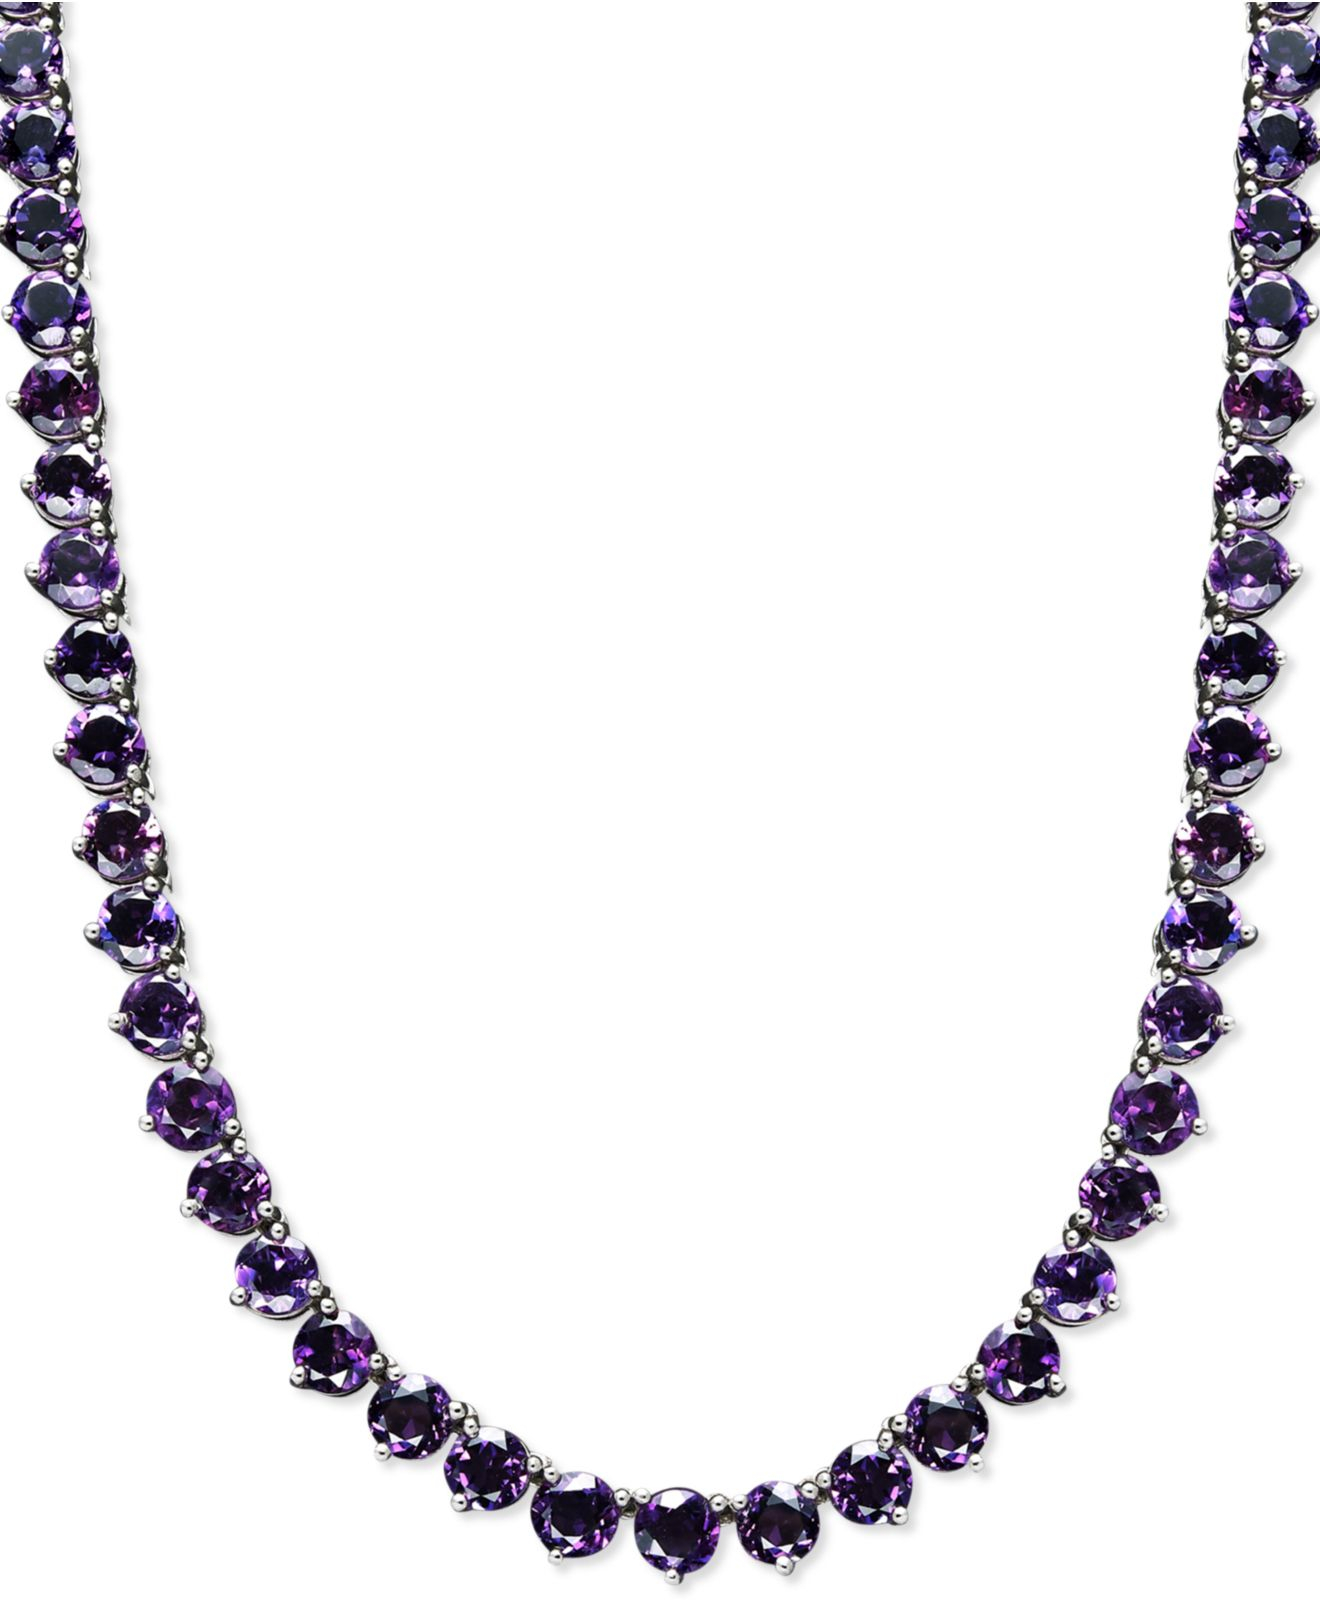 Macy's Sterling Silver Necklace, Amethyst Necklace (30 Ct ...